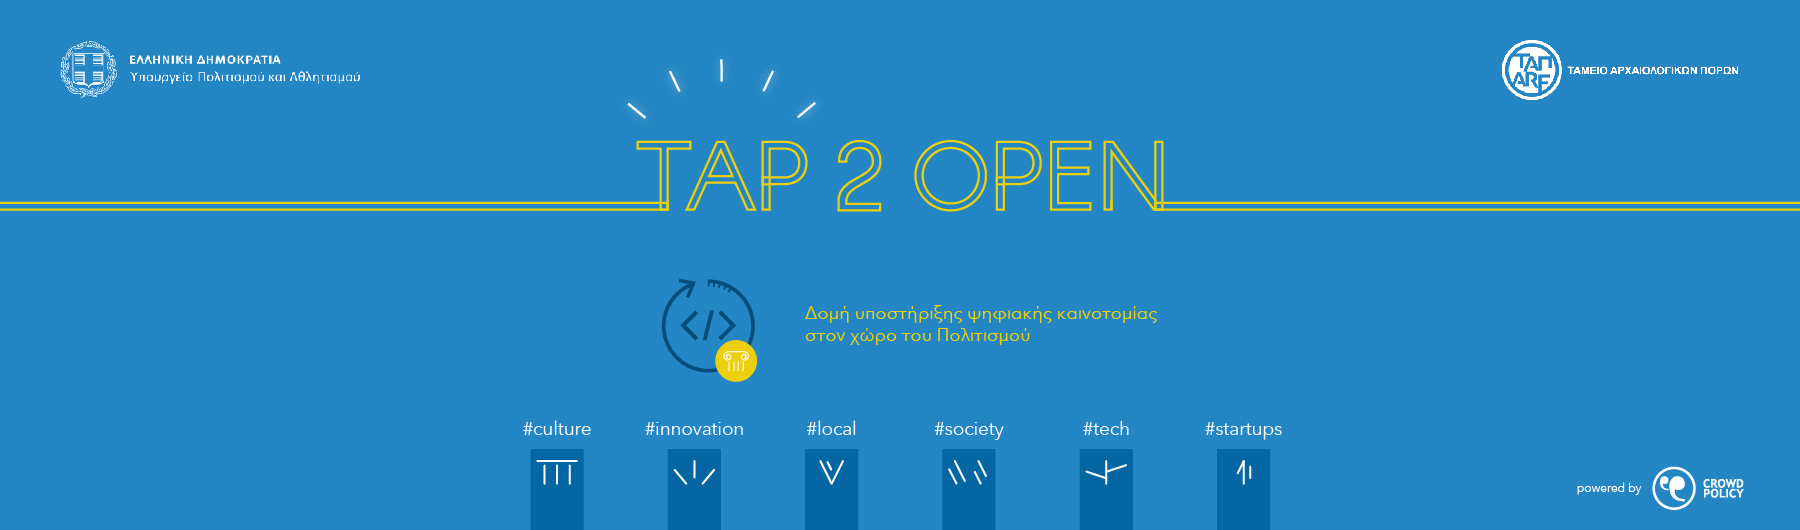 TAP 2 OPEN Bootcamp